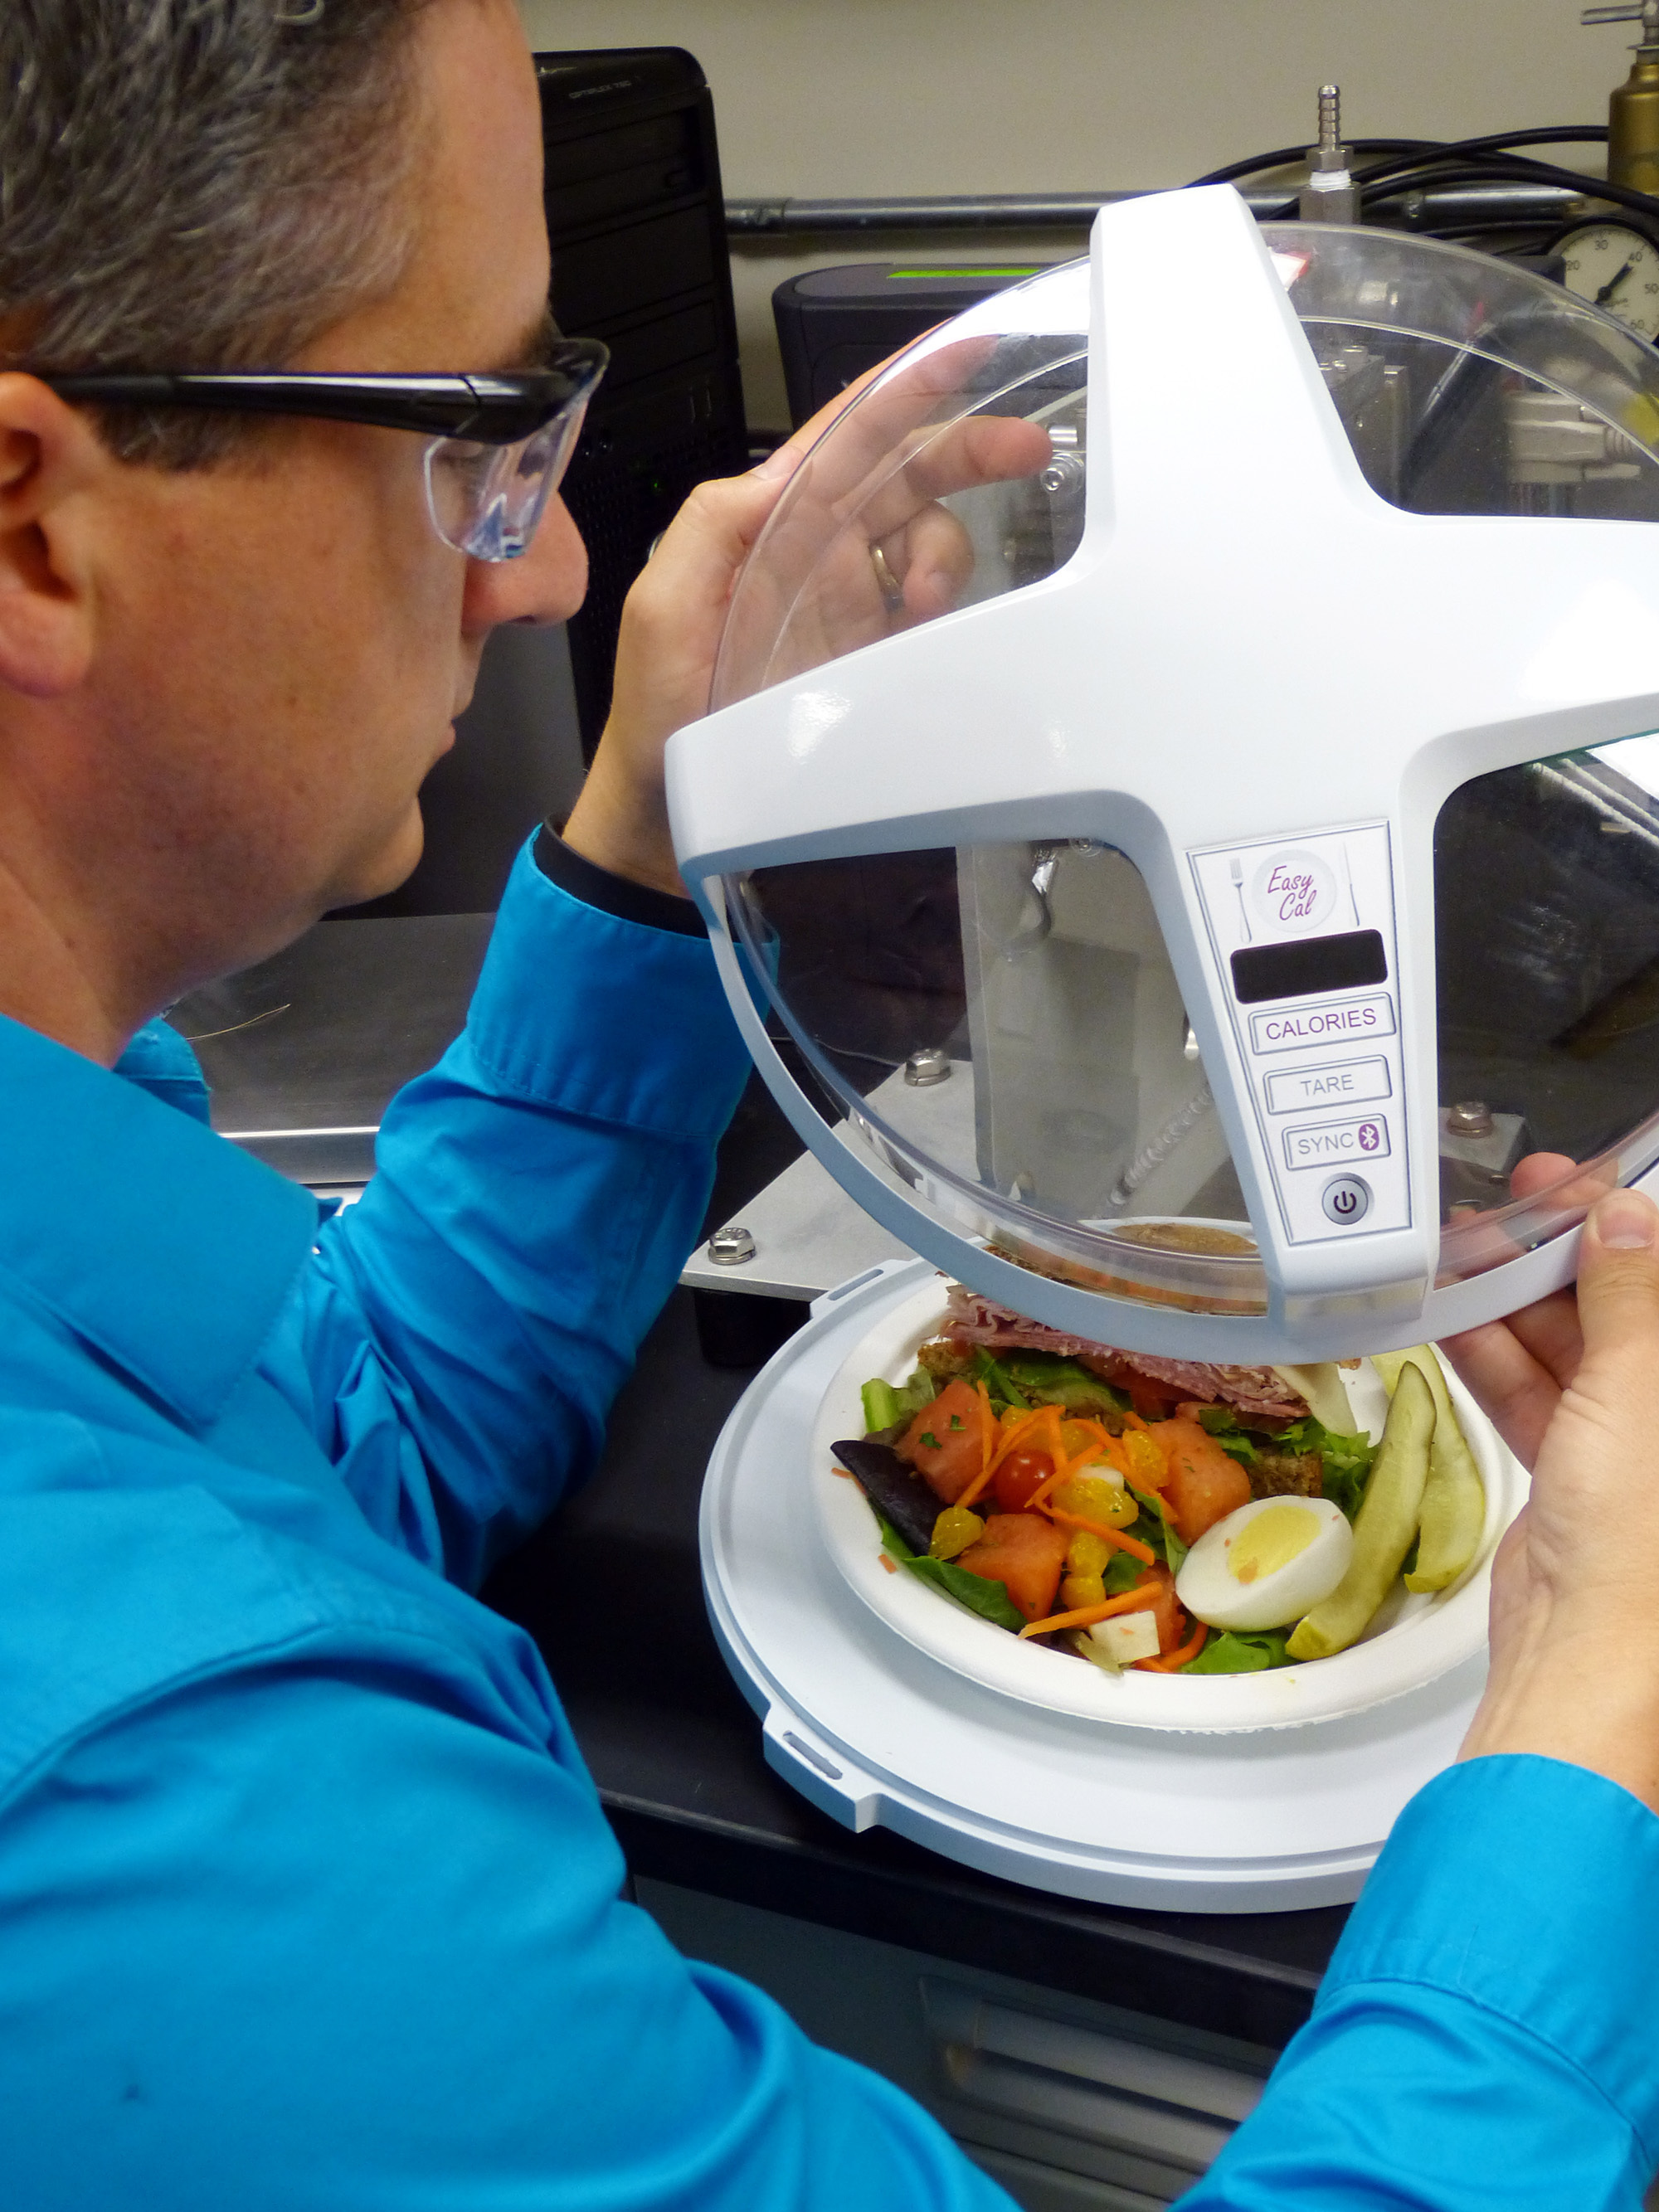 Calorie Counting Machine May Make Dieting Easier In The Future